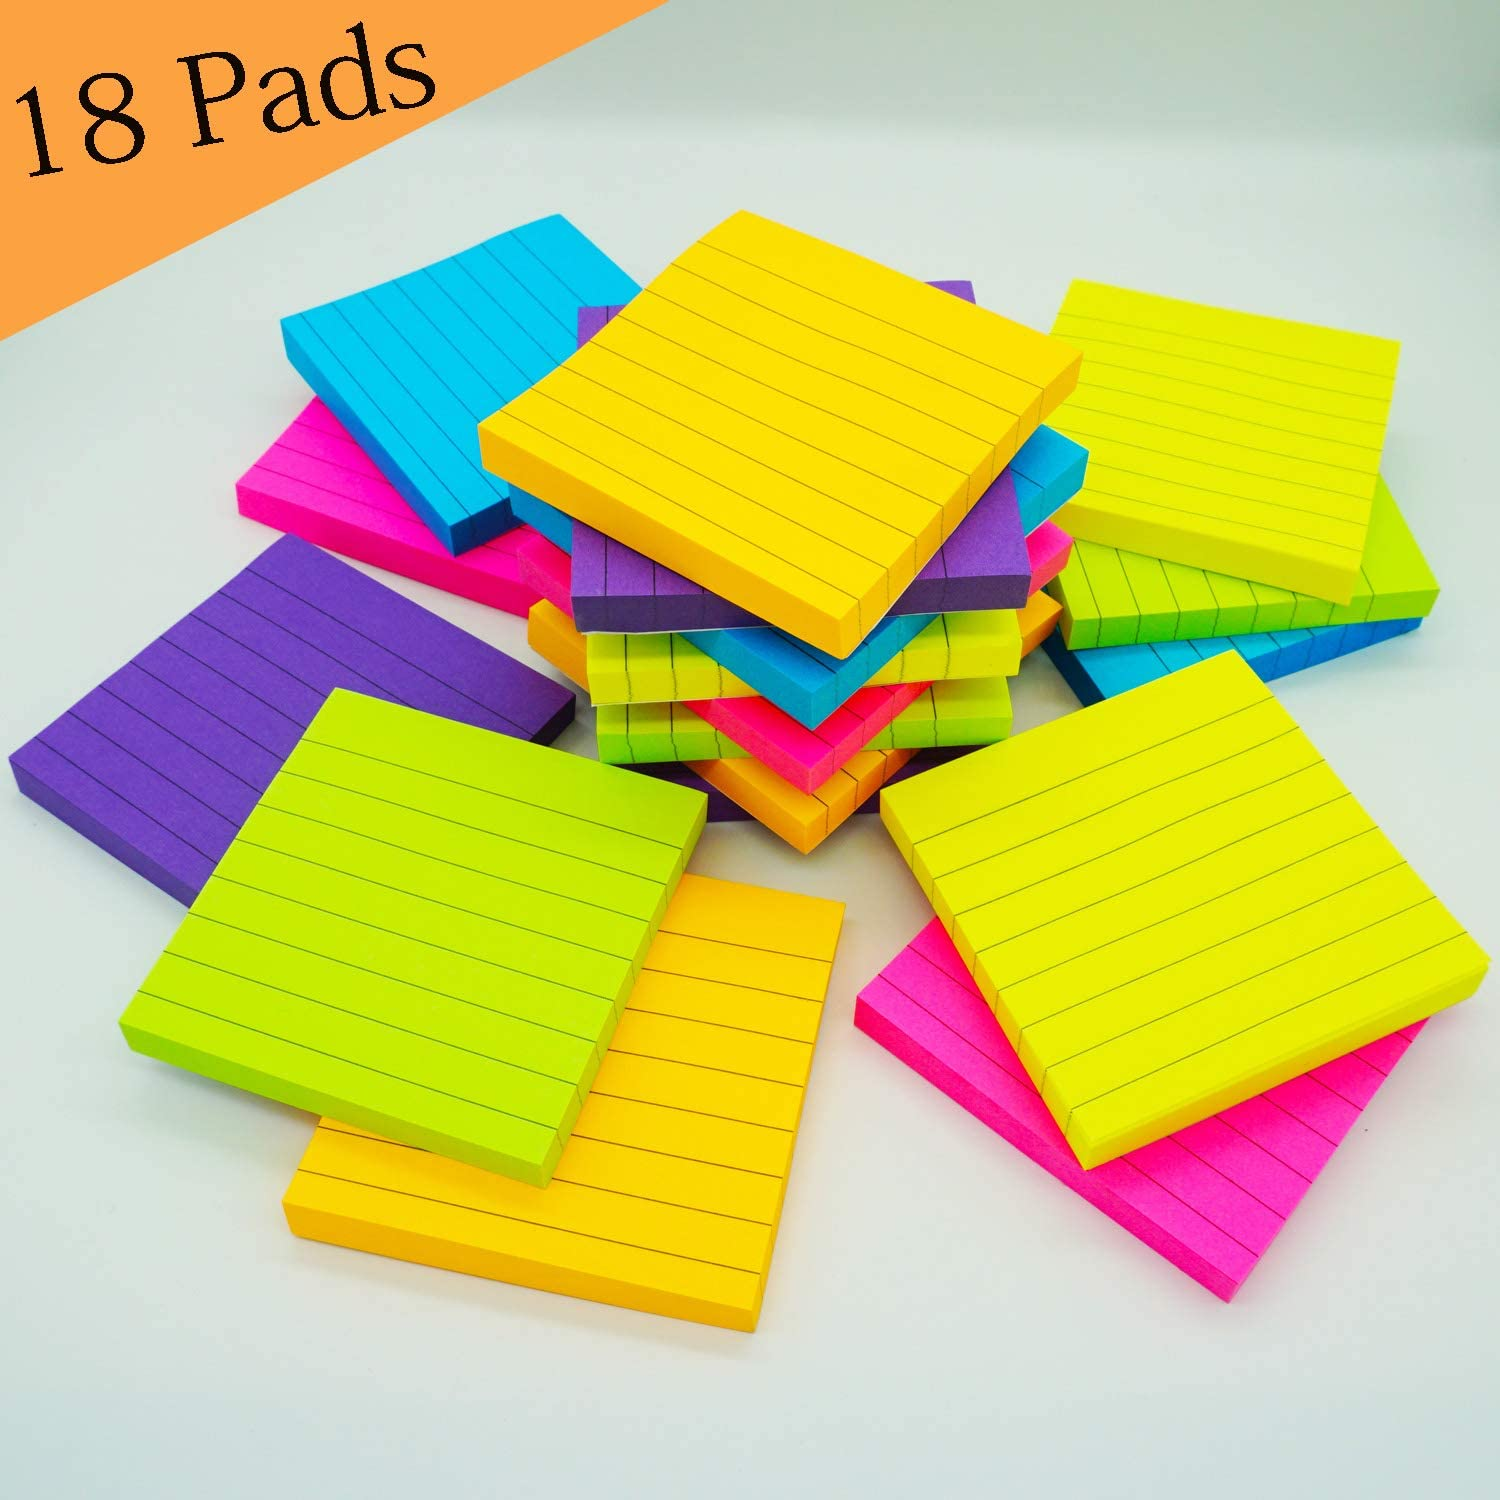 Sticky Notes 3x3 Inch 18 Pads Lined Bright Color